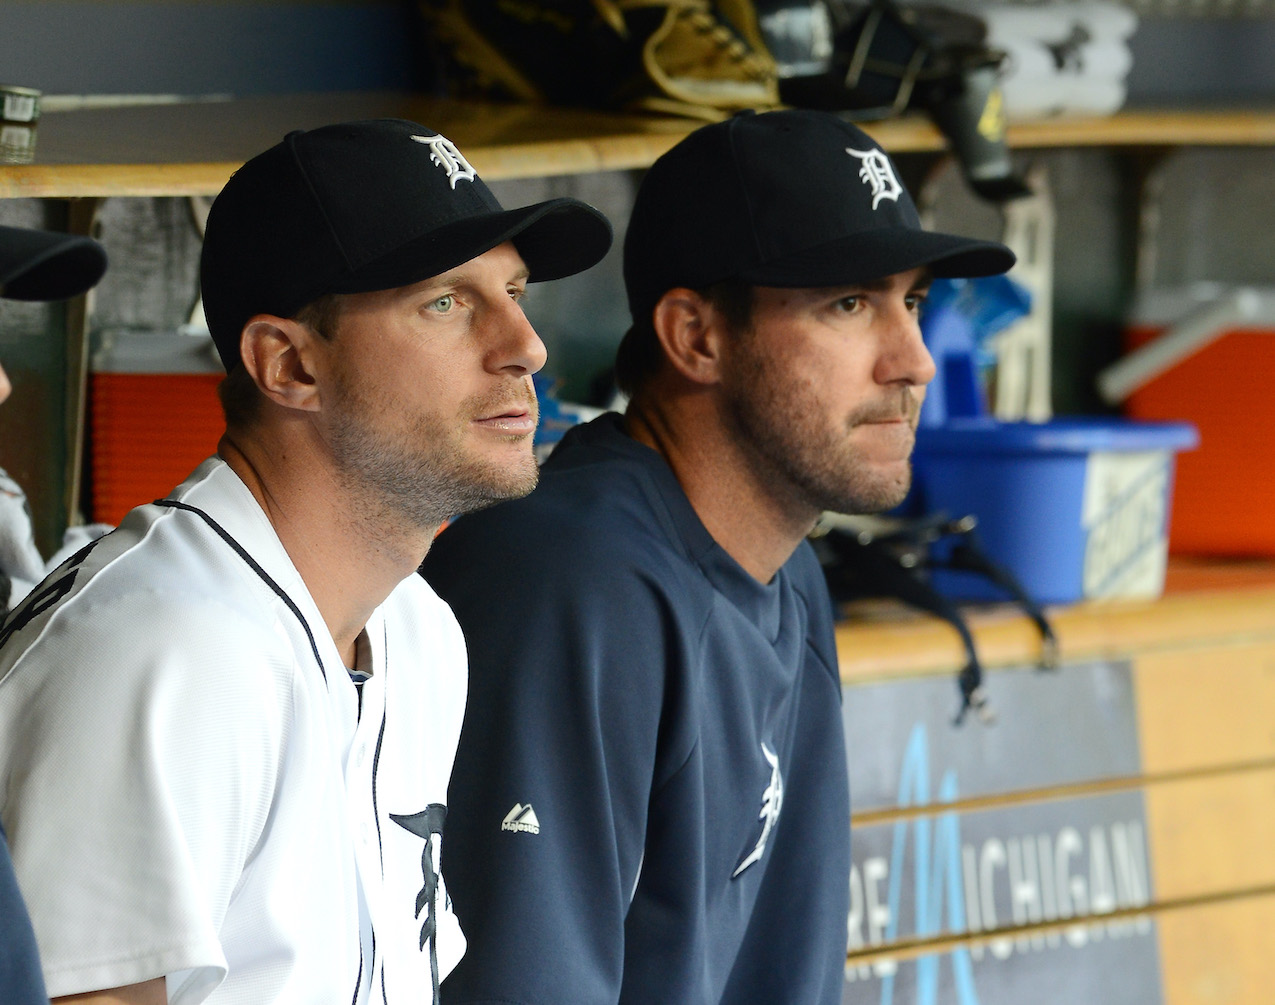 Max Scherzer and Justin Verlander formed the backbone of a ferocious Detroit Tigers pitching staff, but were they friends when they played together?